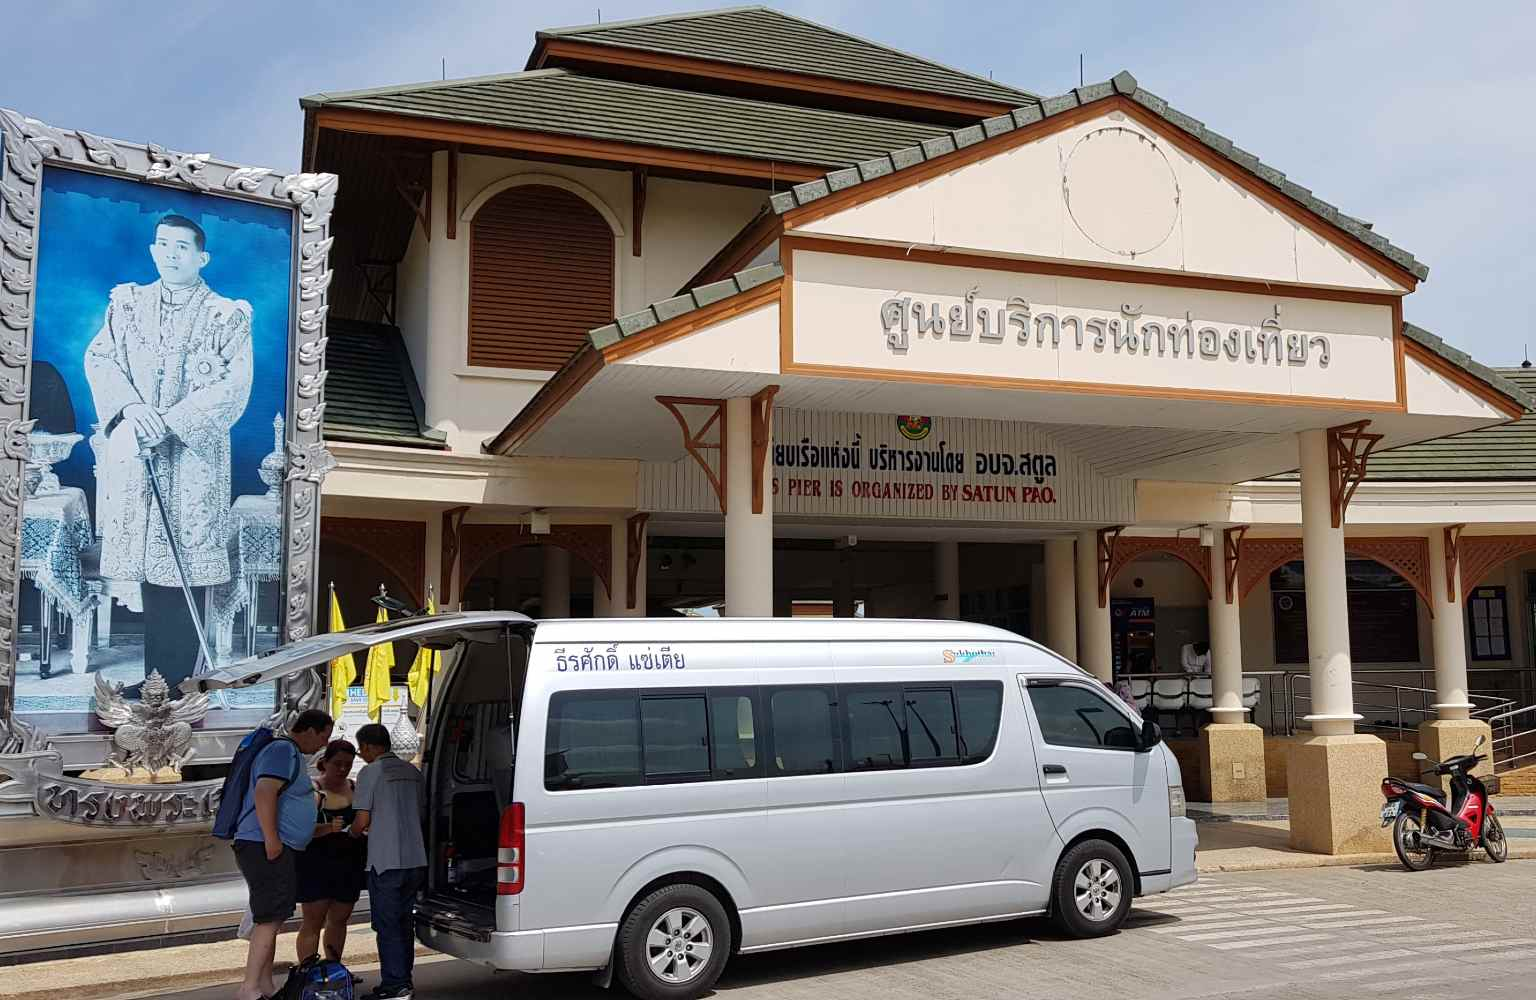 Minivan in front of the main building of the Pak Bar pier